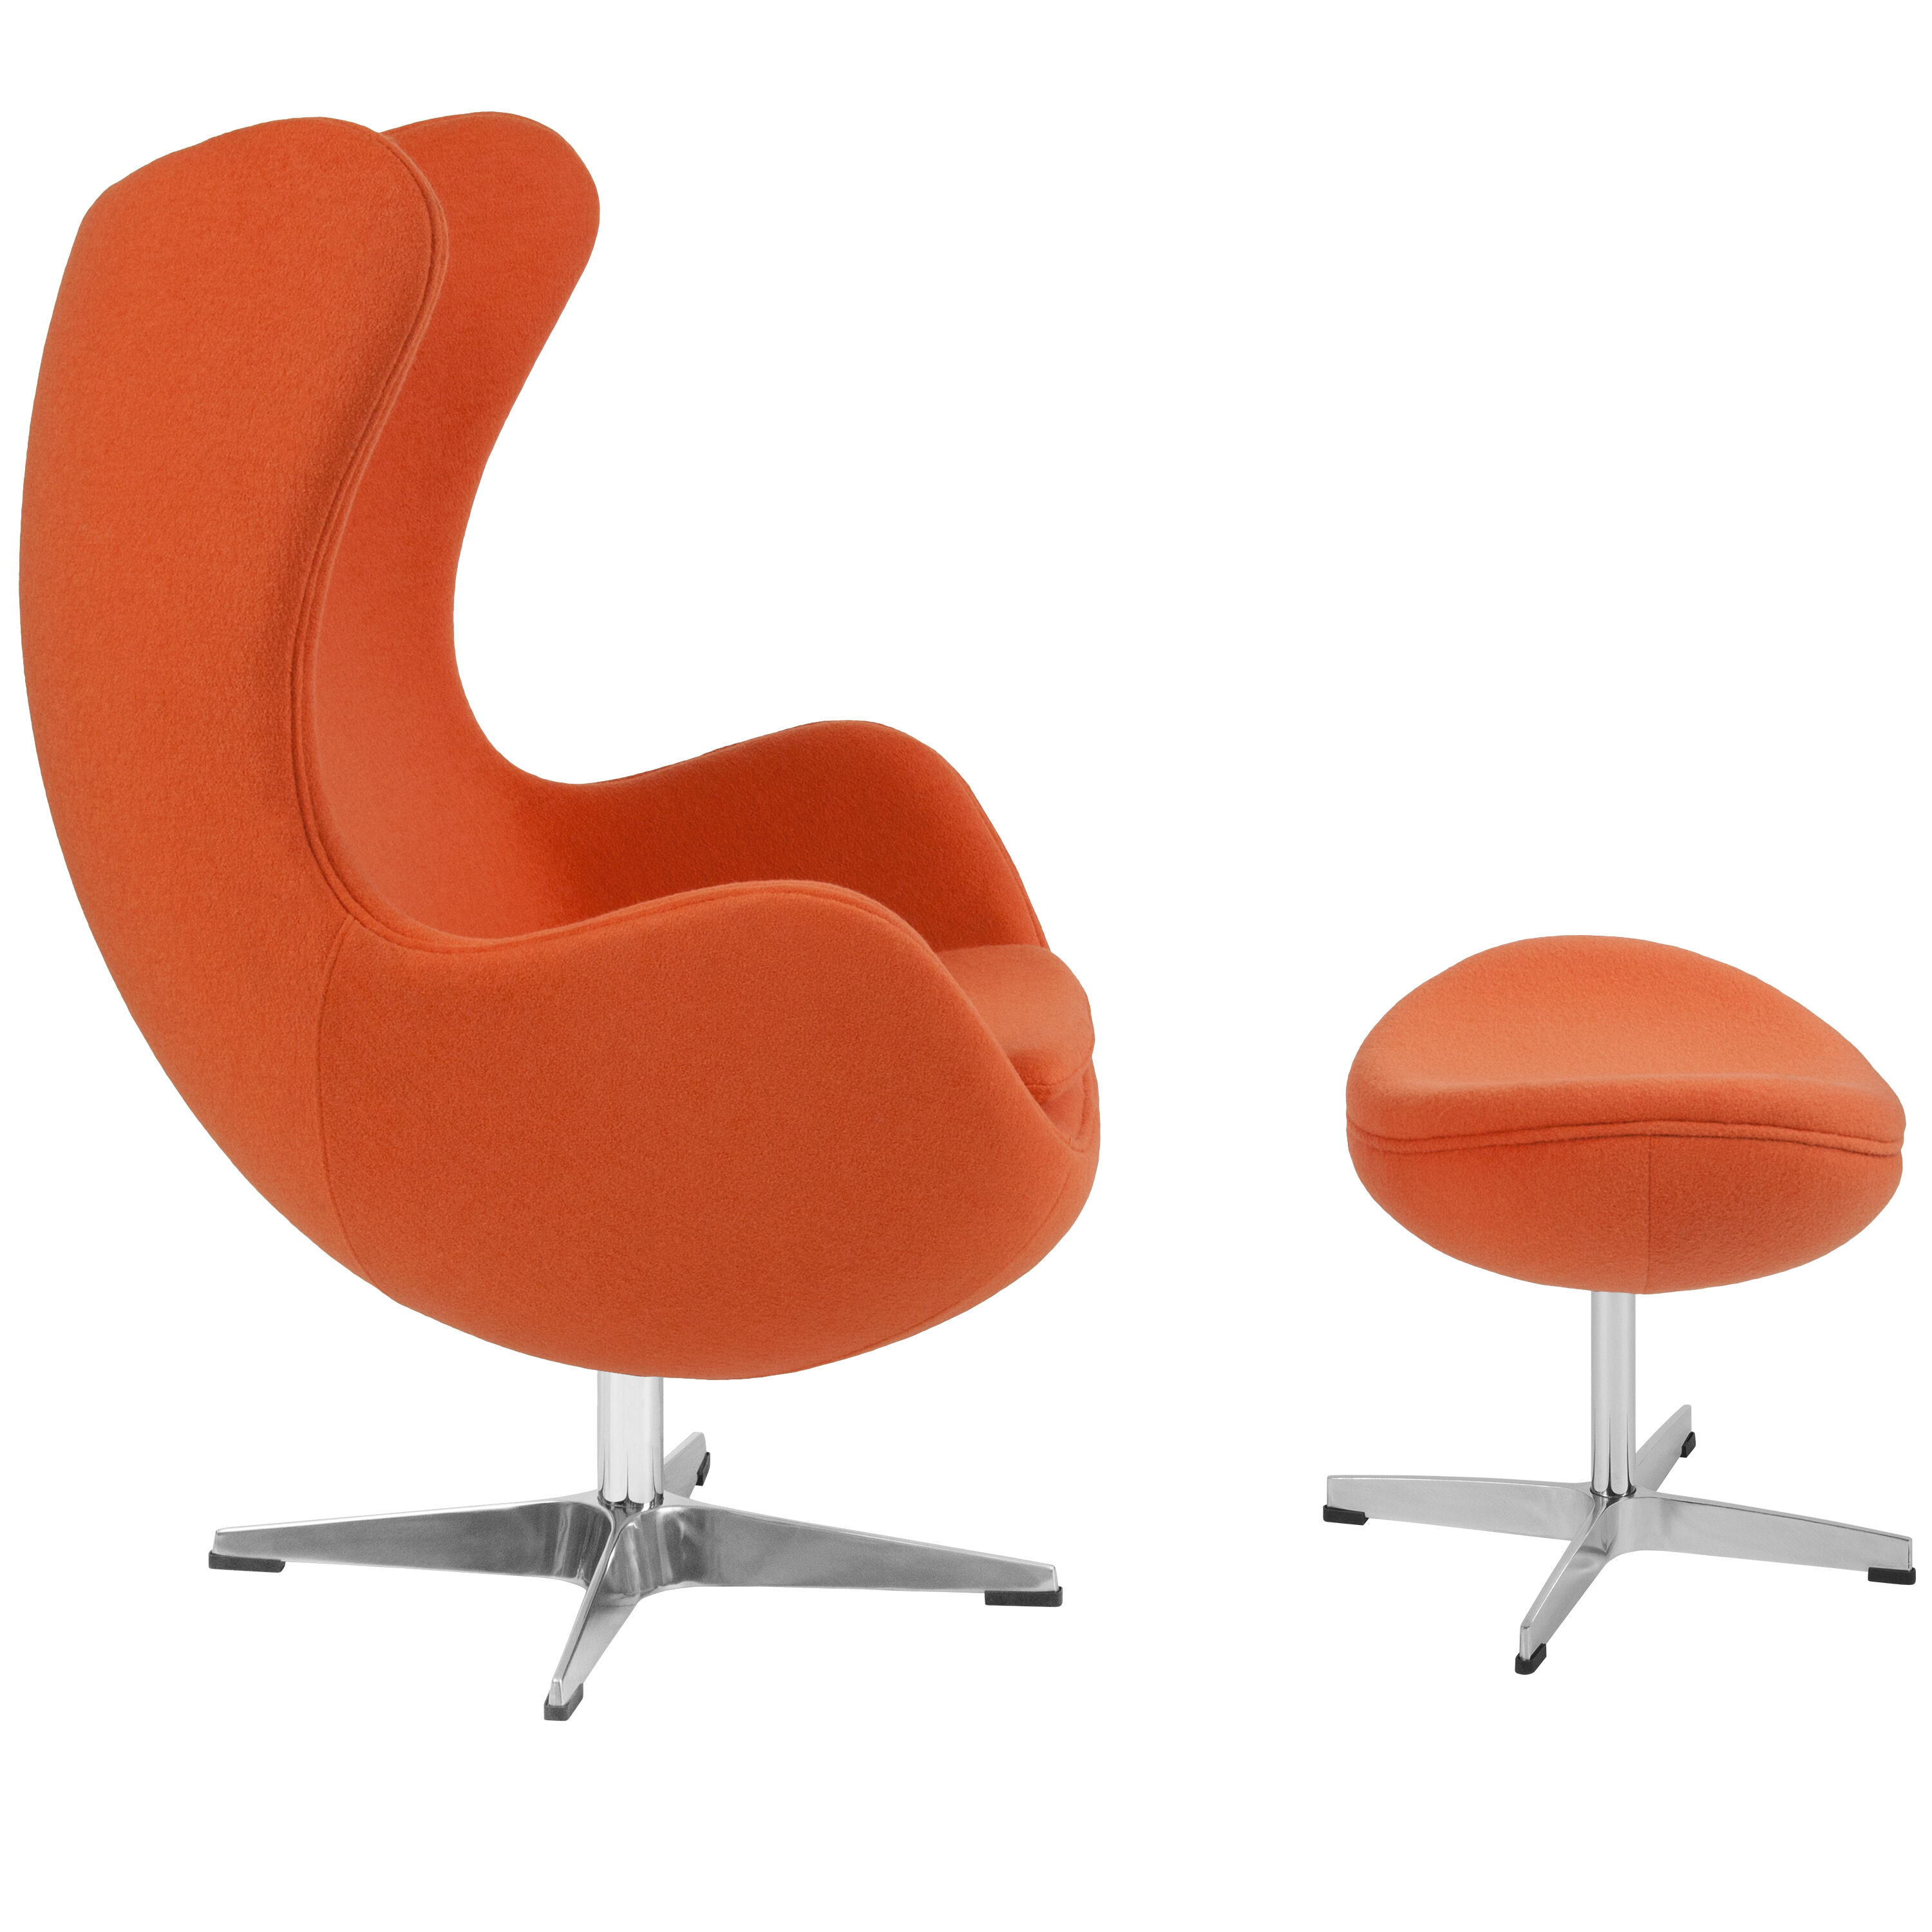 ... Our Orange Wool Fabric Egg Chair With Tilt Lock Mechanism And Ottoman  Is On Sale ...